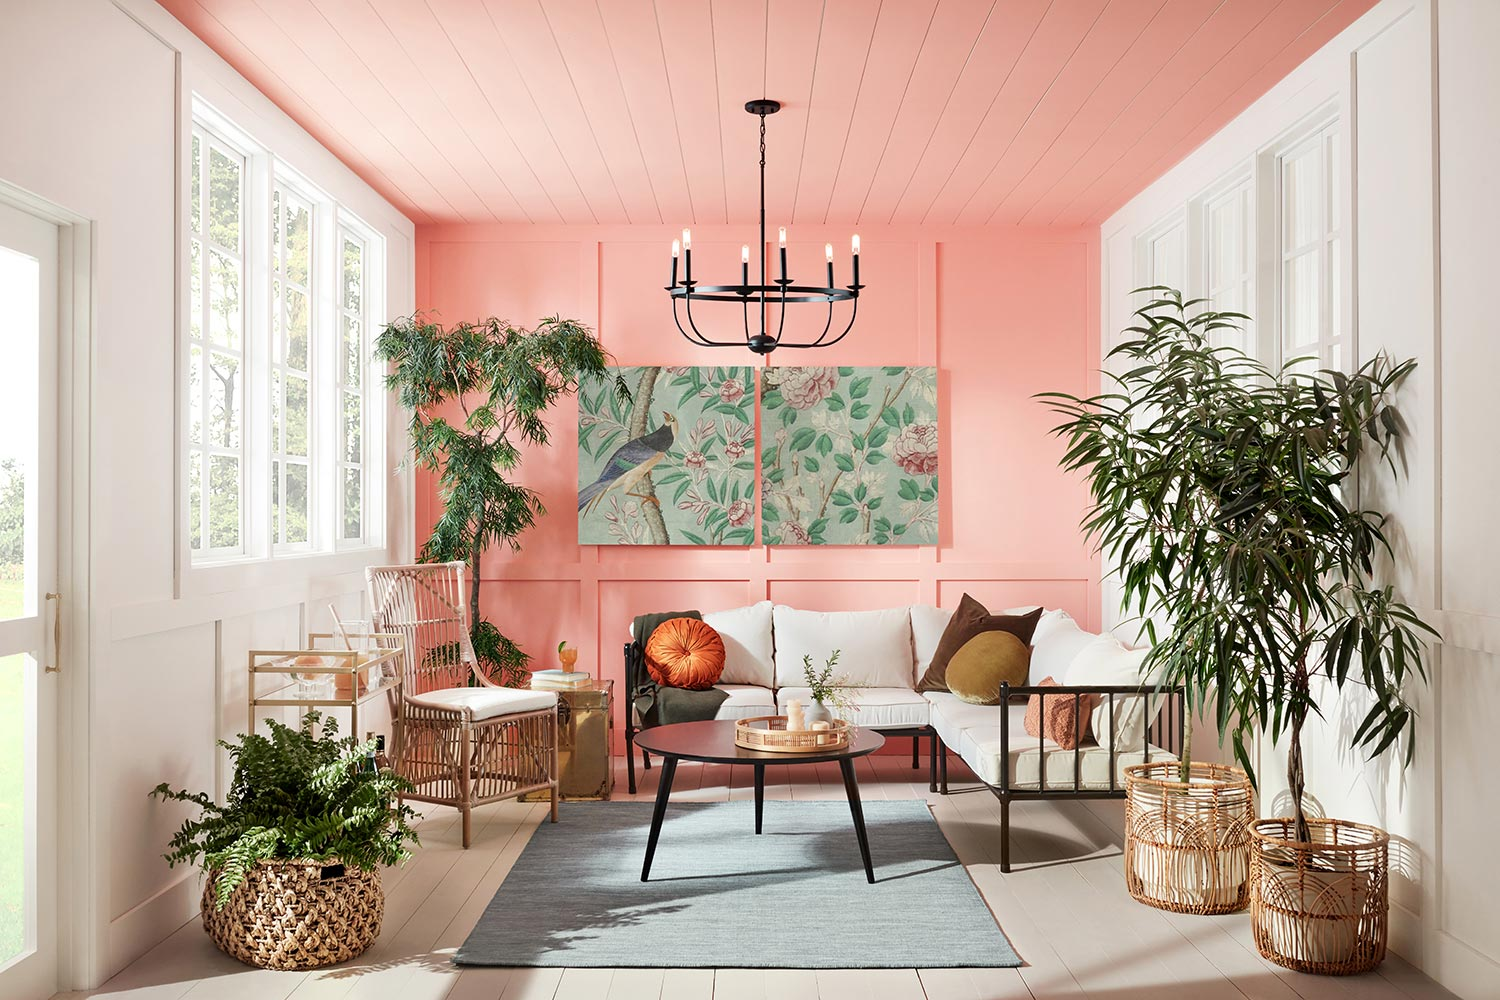 Covered porch with back wall and ceiling painted jovial SW 6611, accompanied by boho influenced decor and furniture